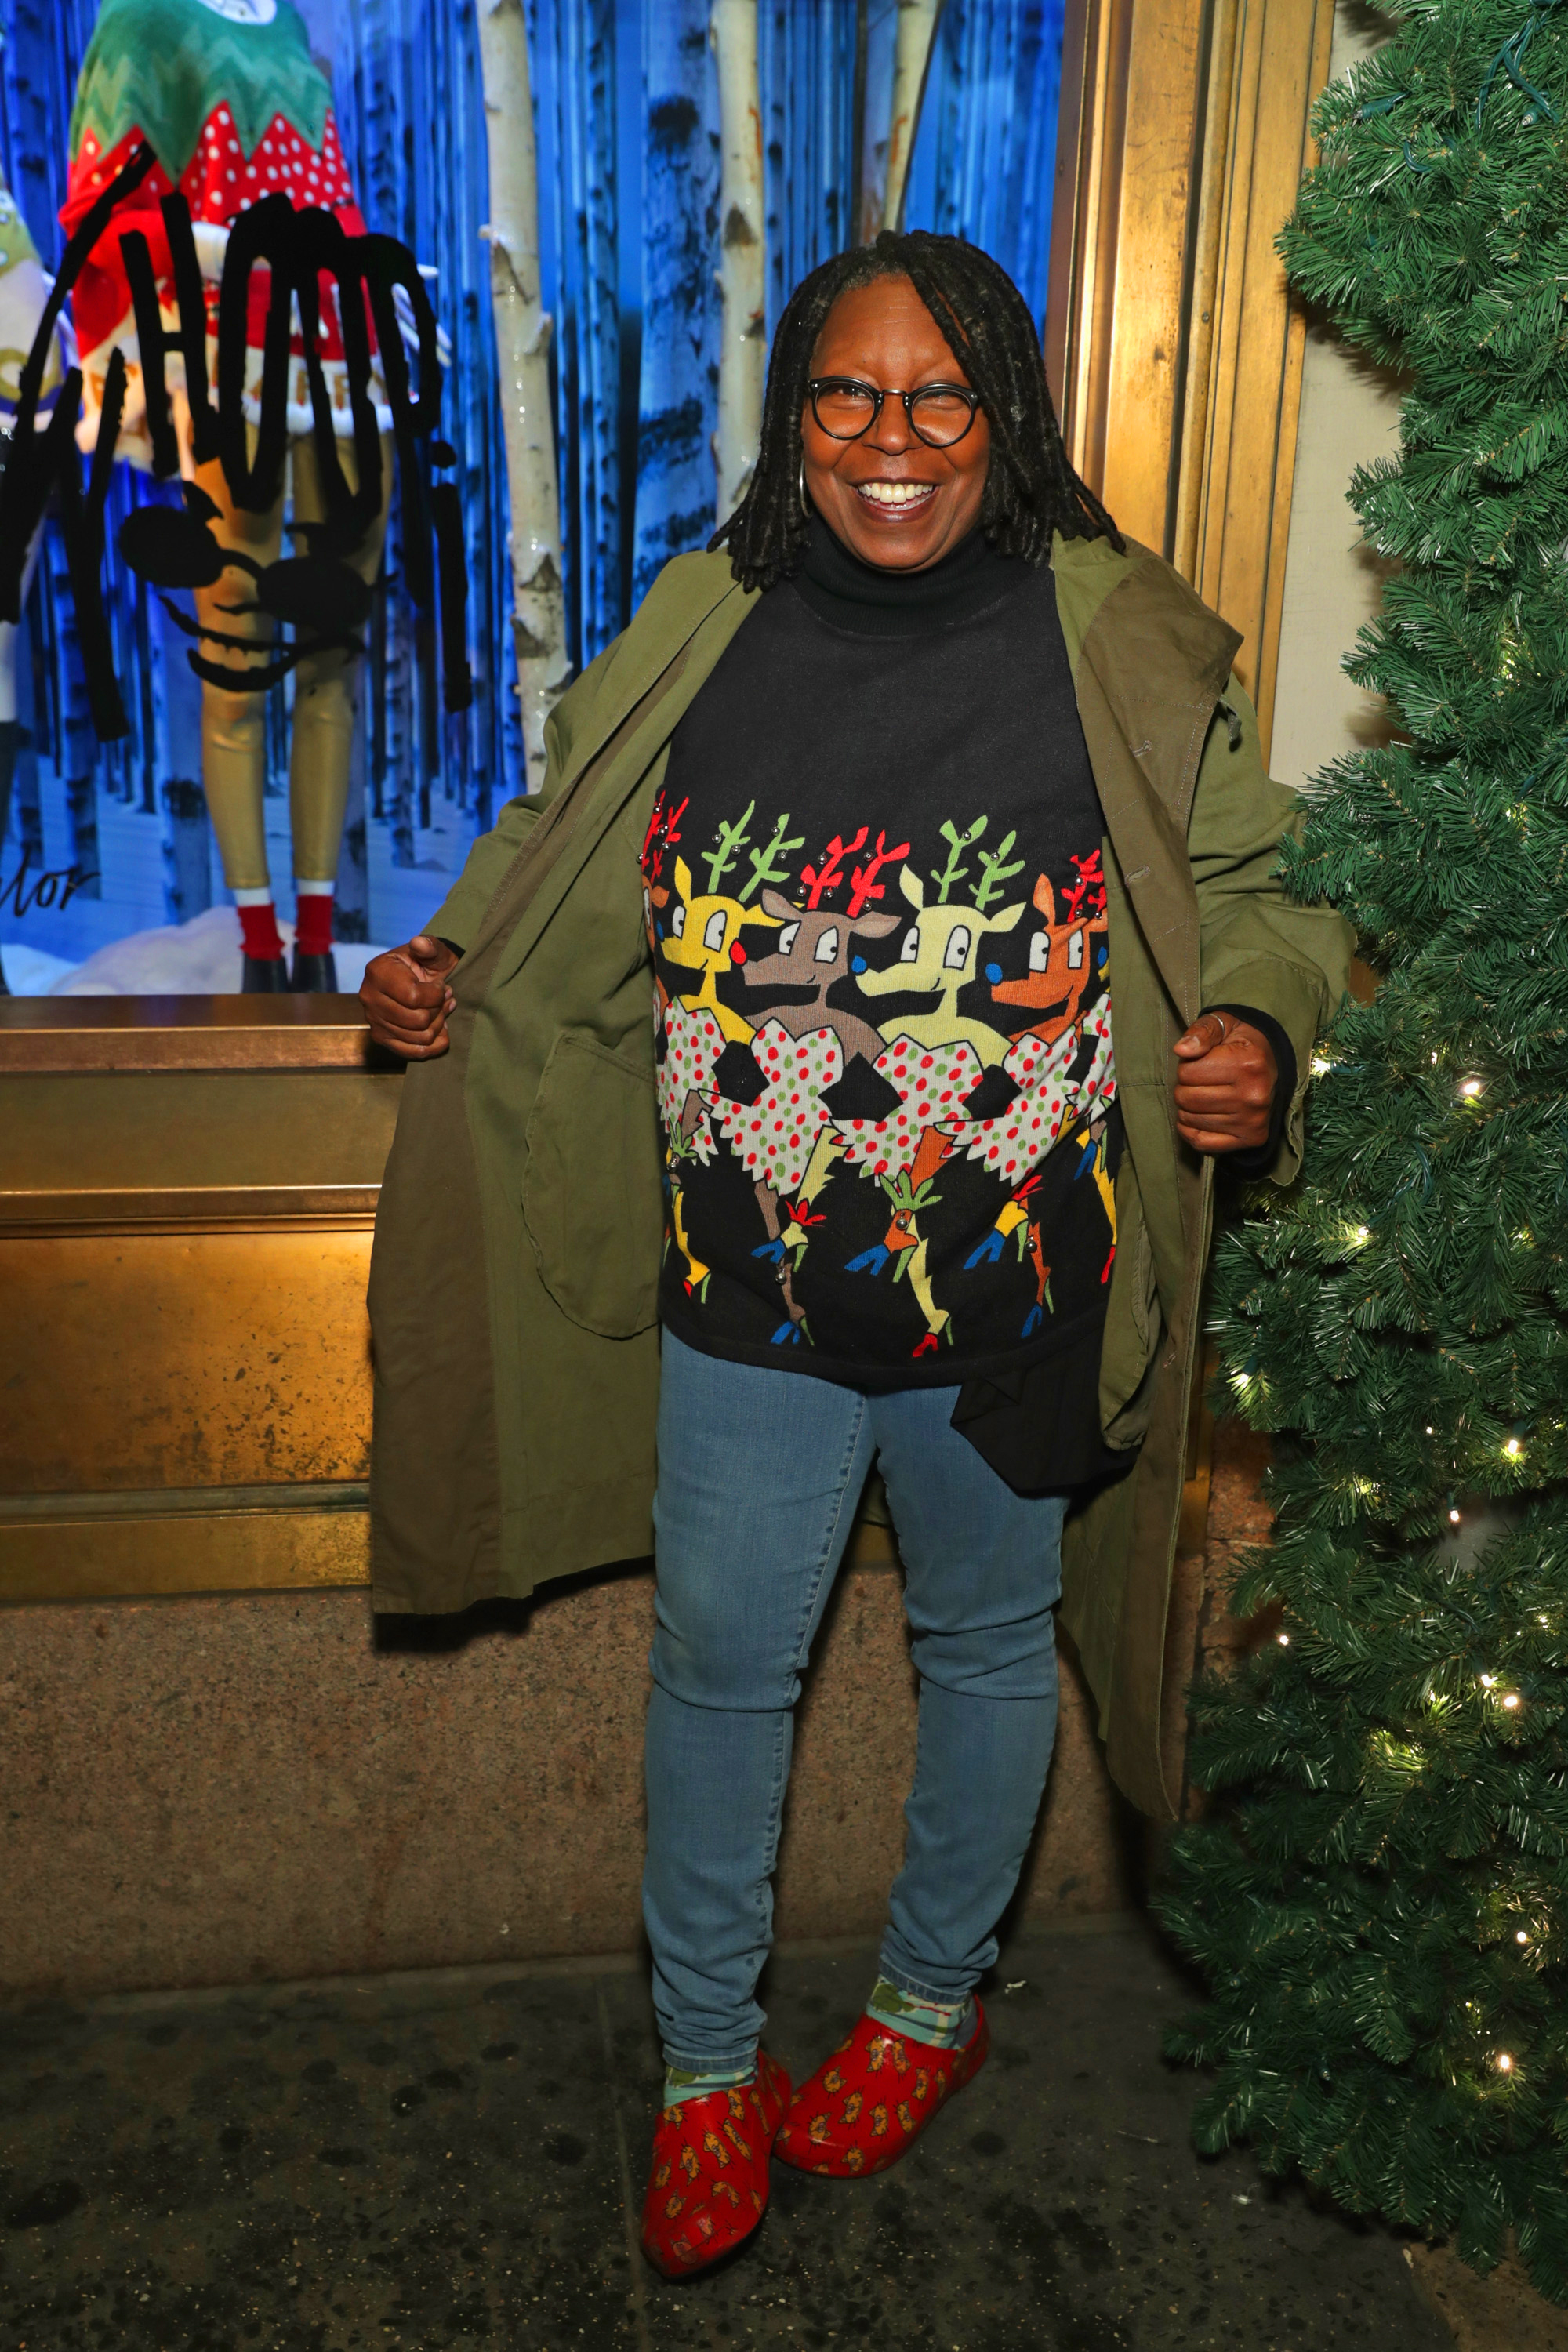 ca81f301 Whoopi Goldberg. The View cohost loves ugly Christmas sweaters ...